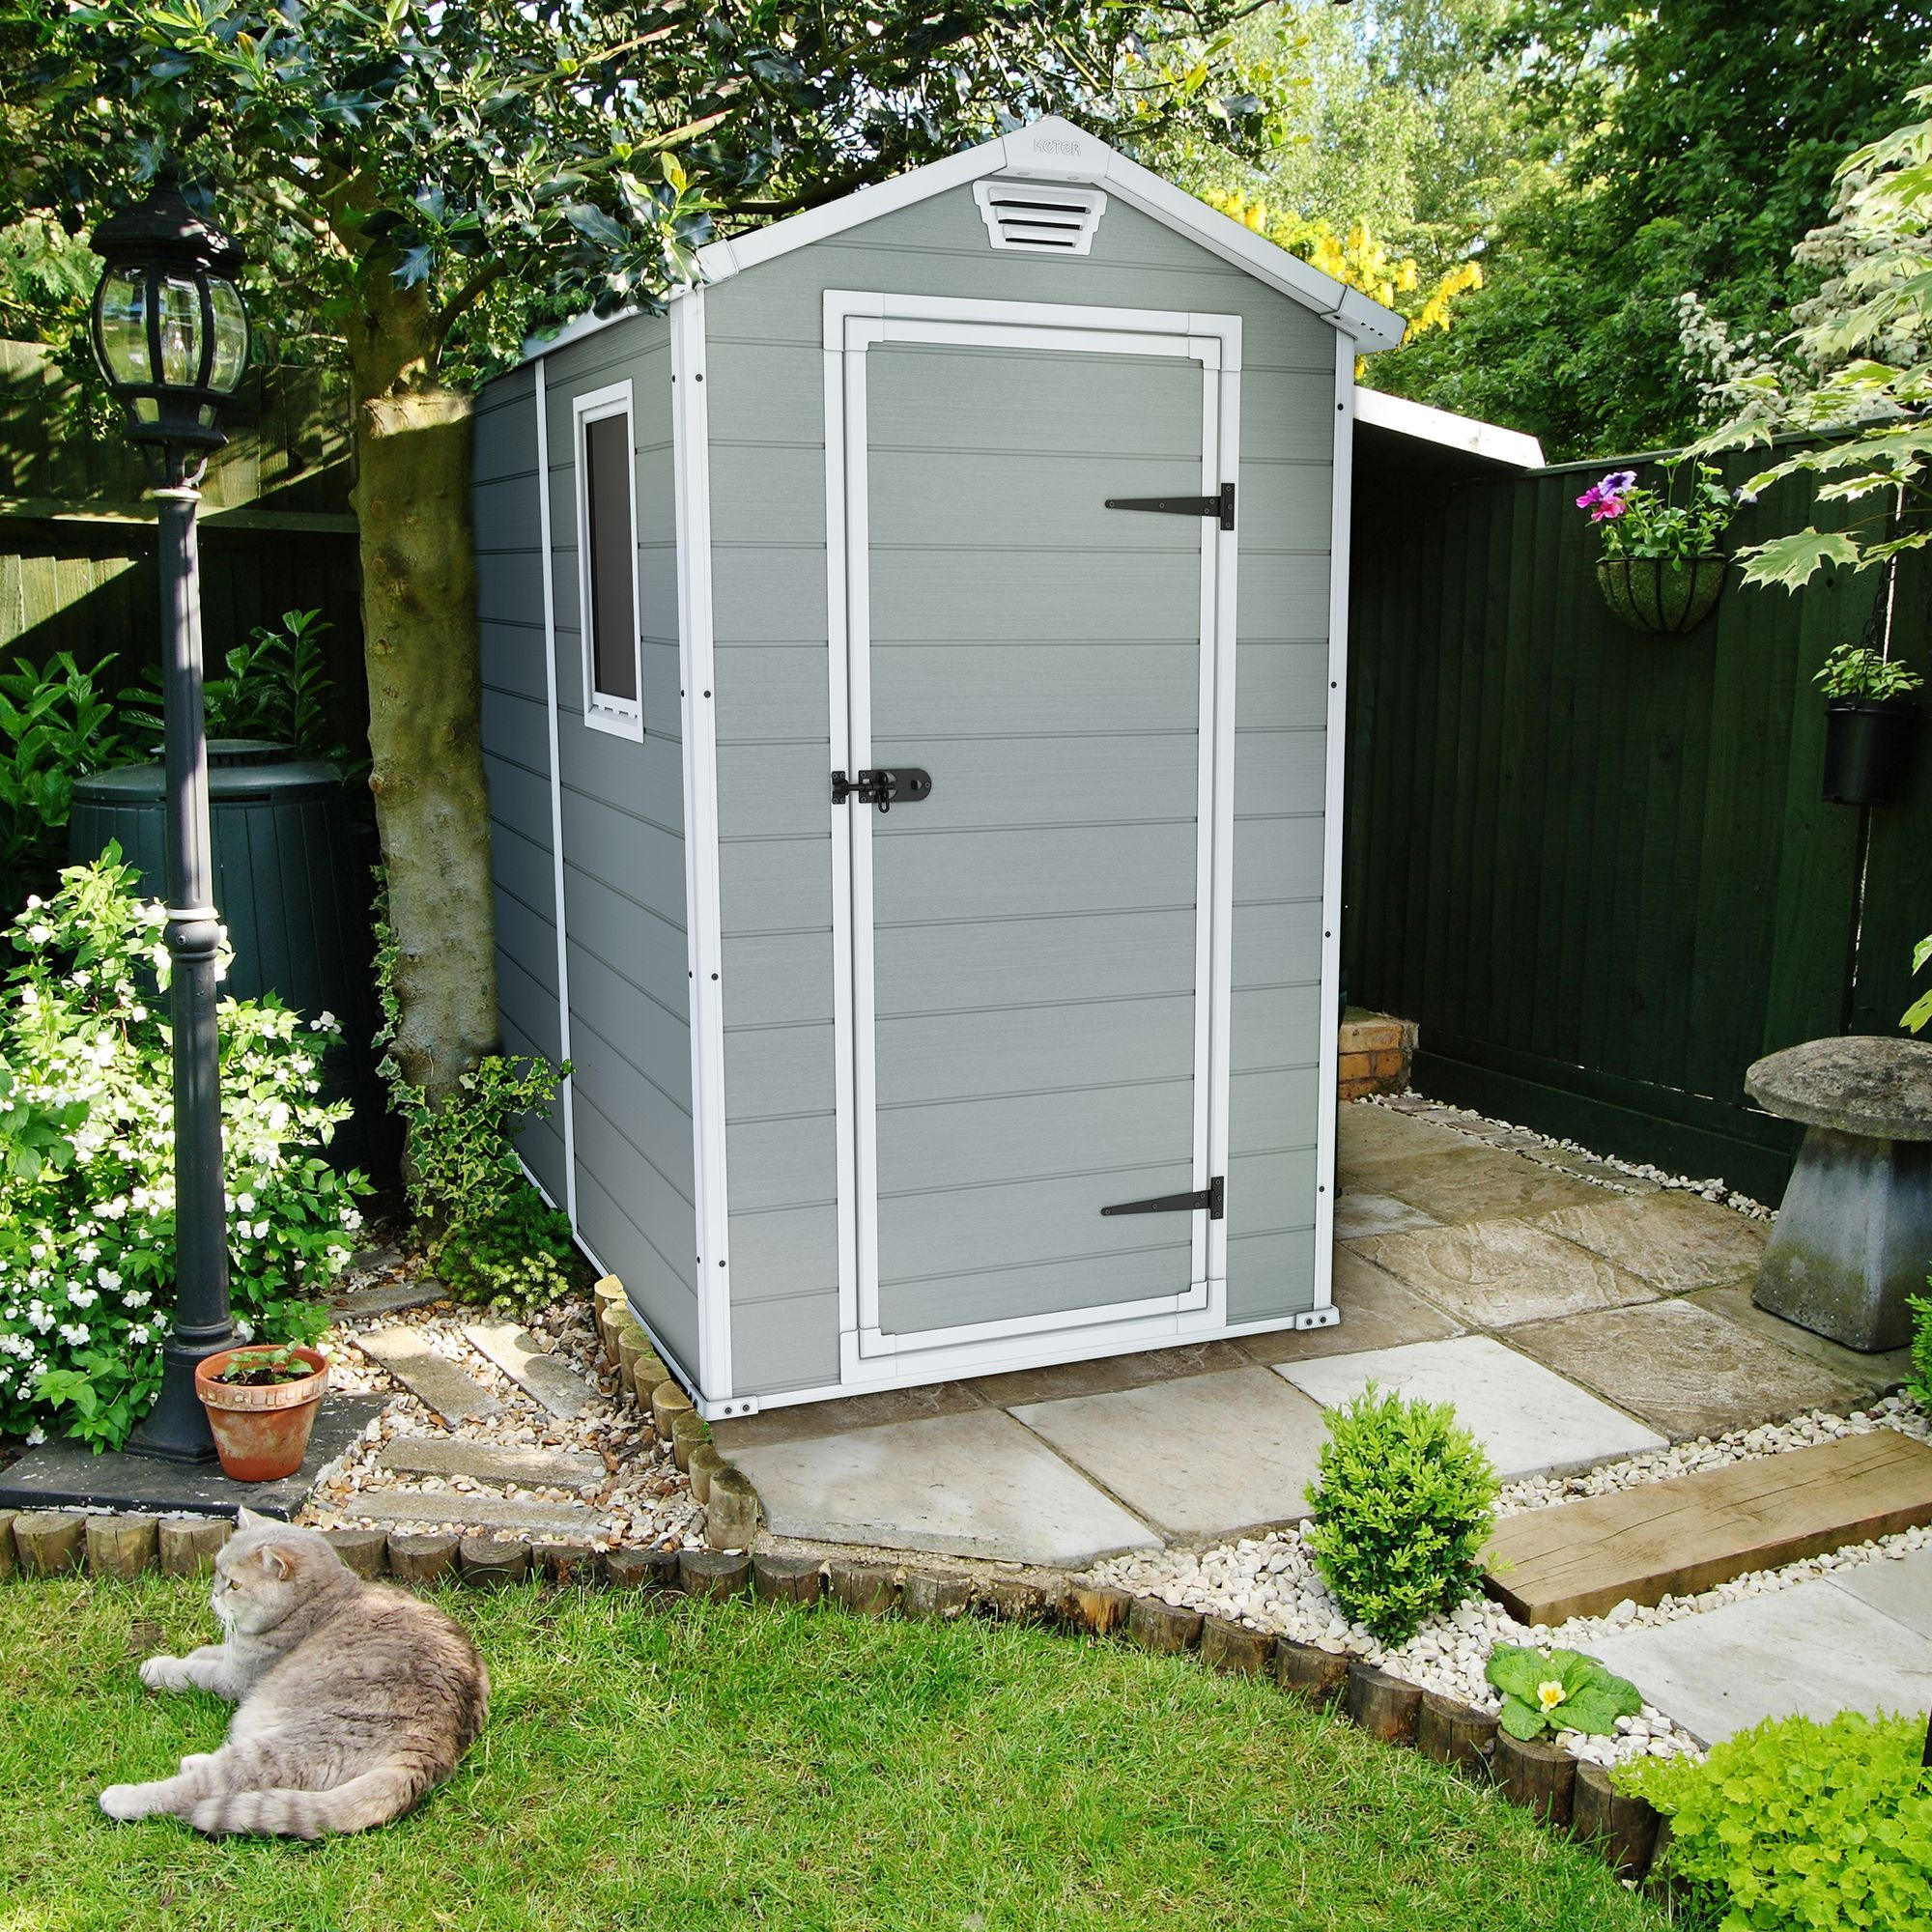 6x4 manor apex plastic shed garden ideas gardens and coops for Outdoor garden shed